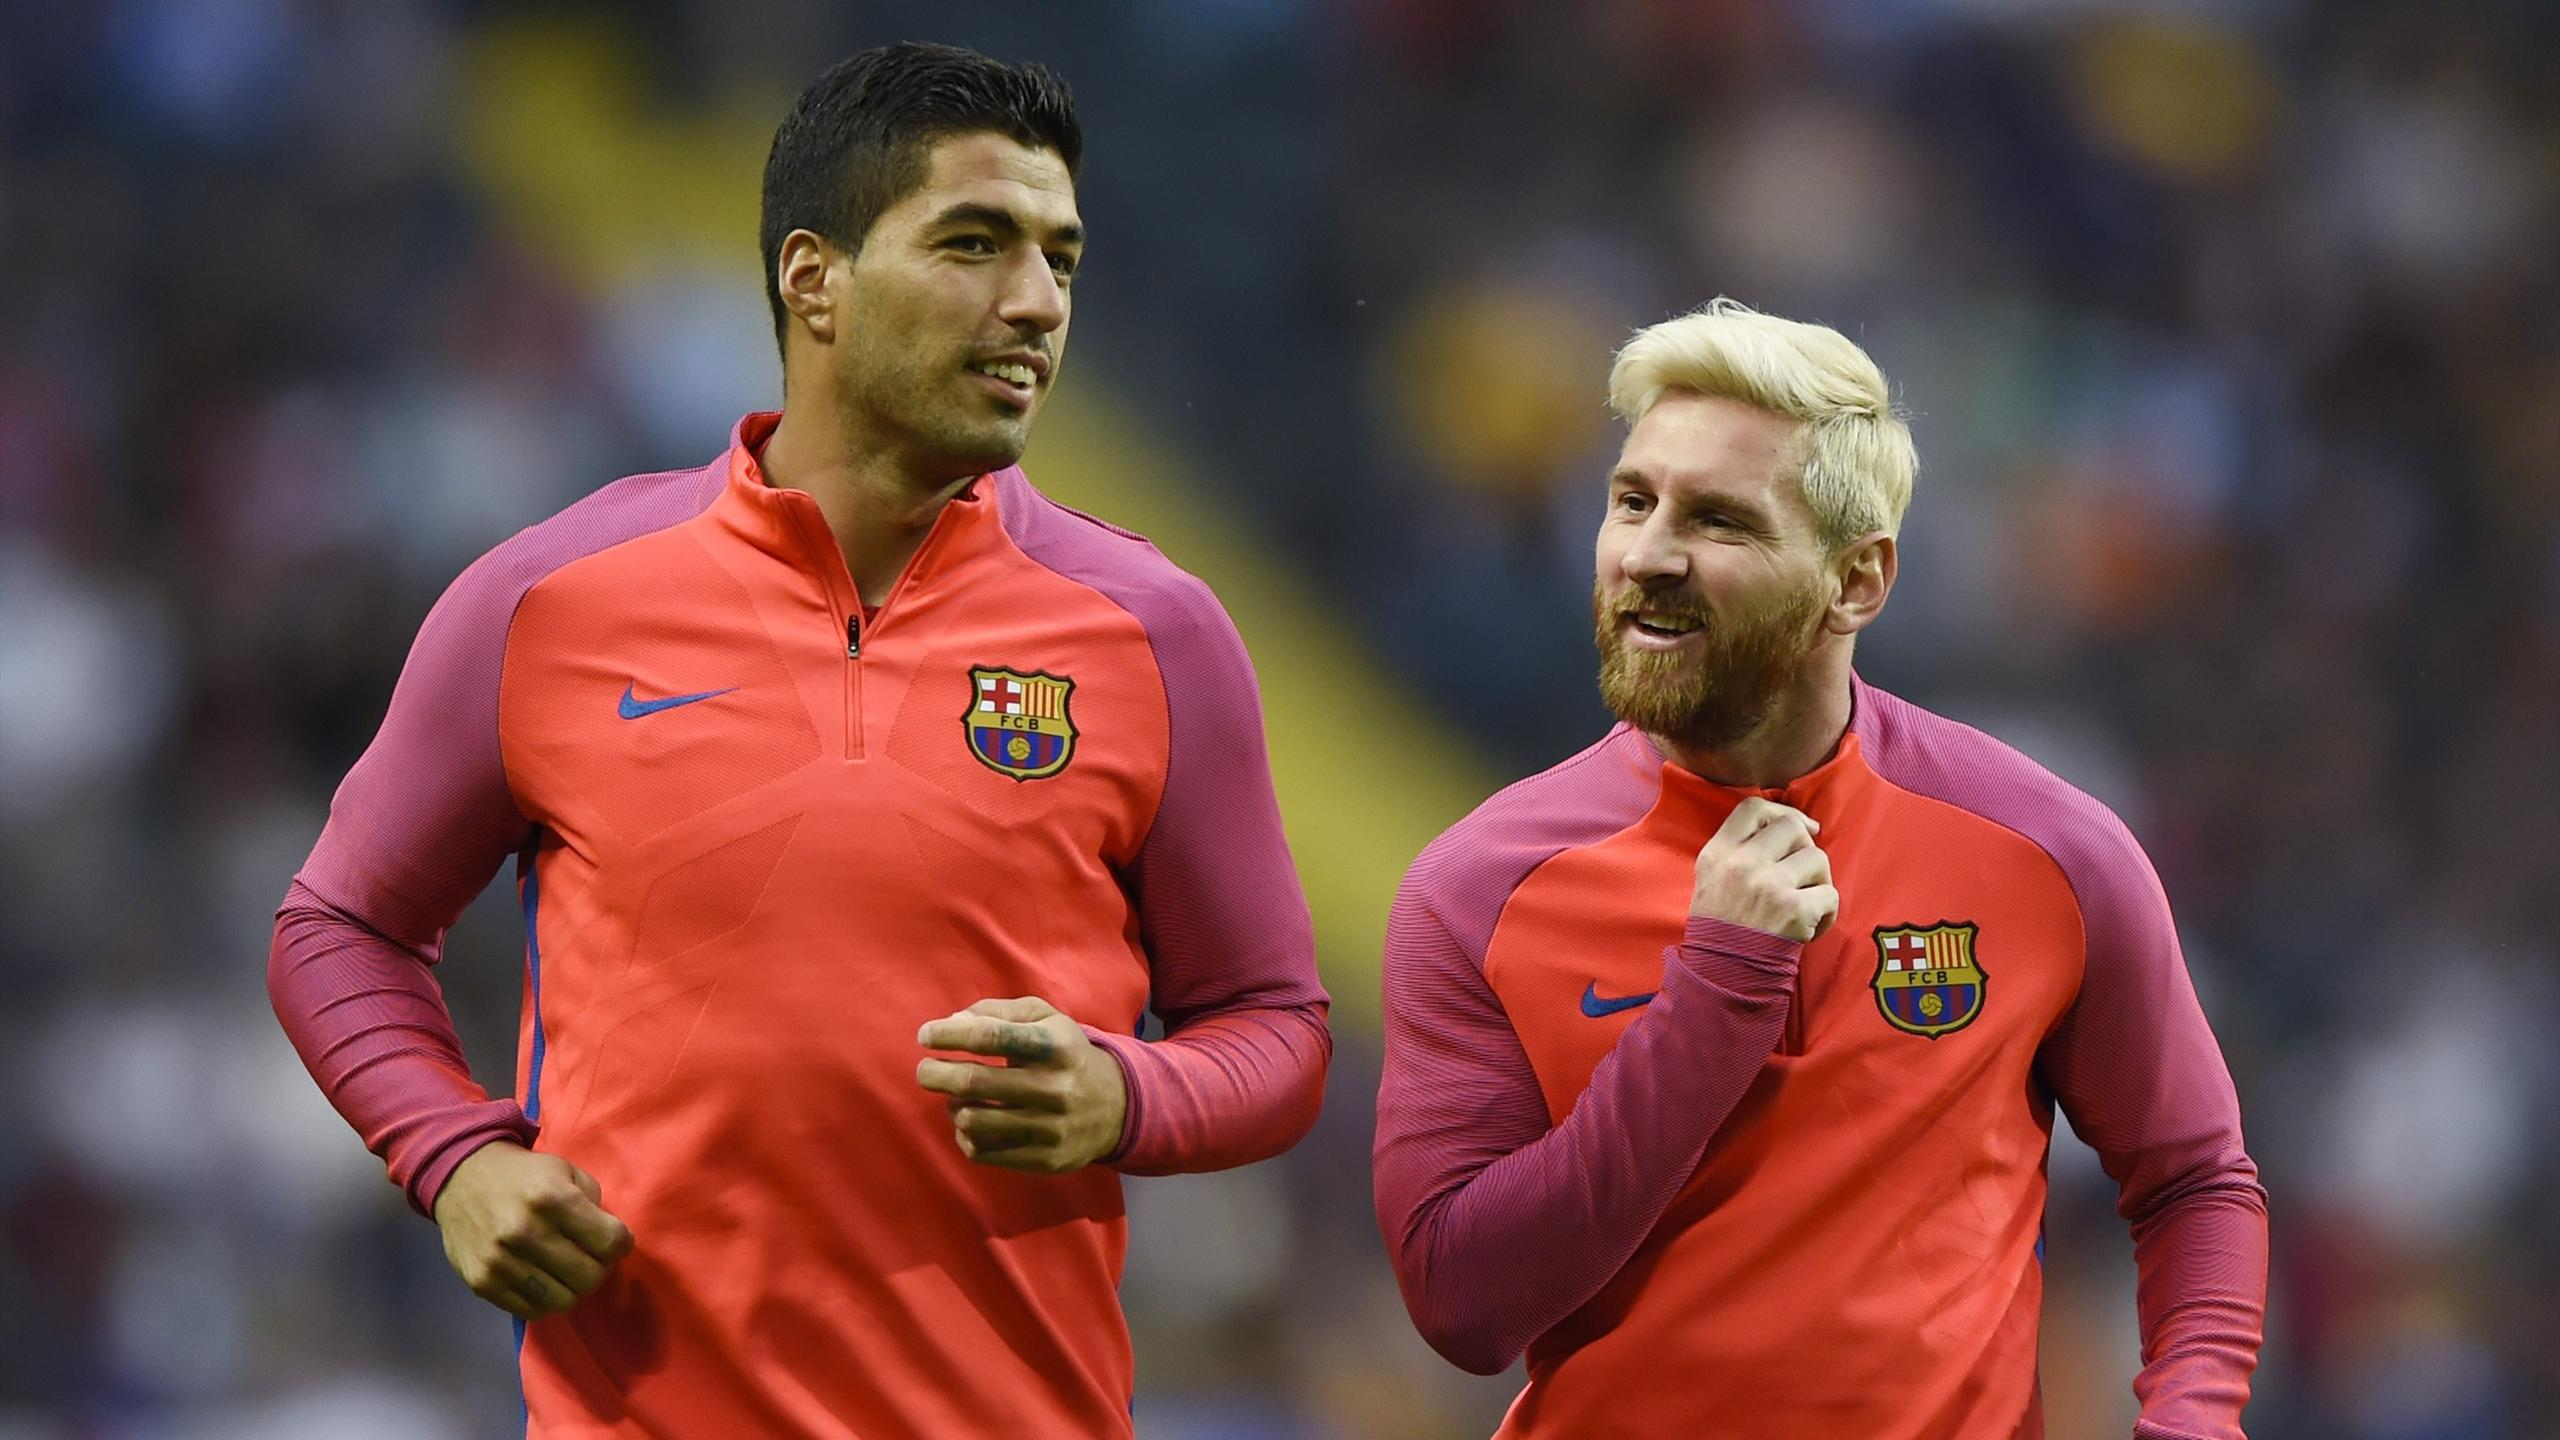 Barcelona's Luis Suarez and Lionel Messi during the warm up before the match